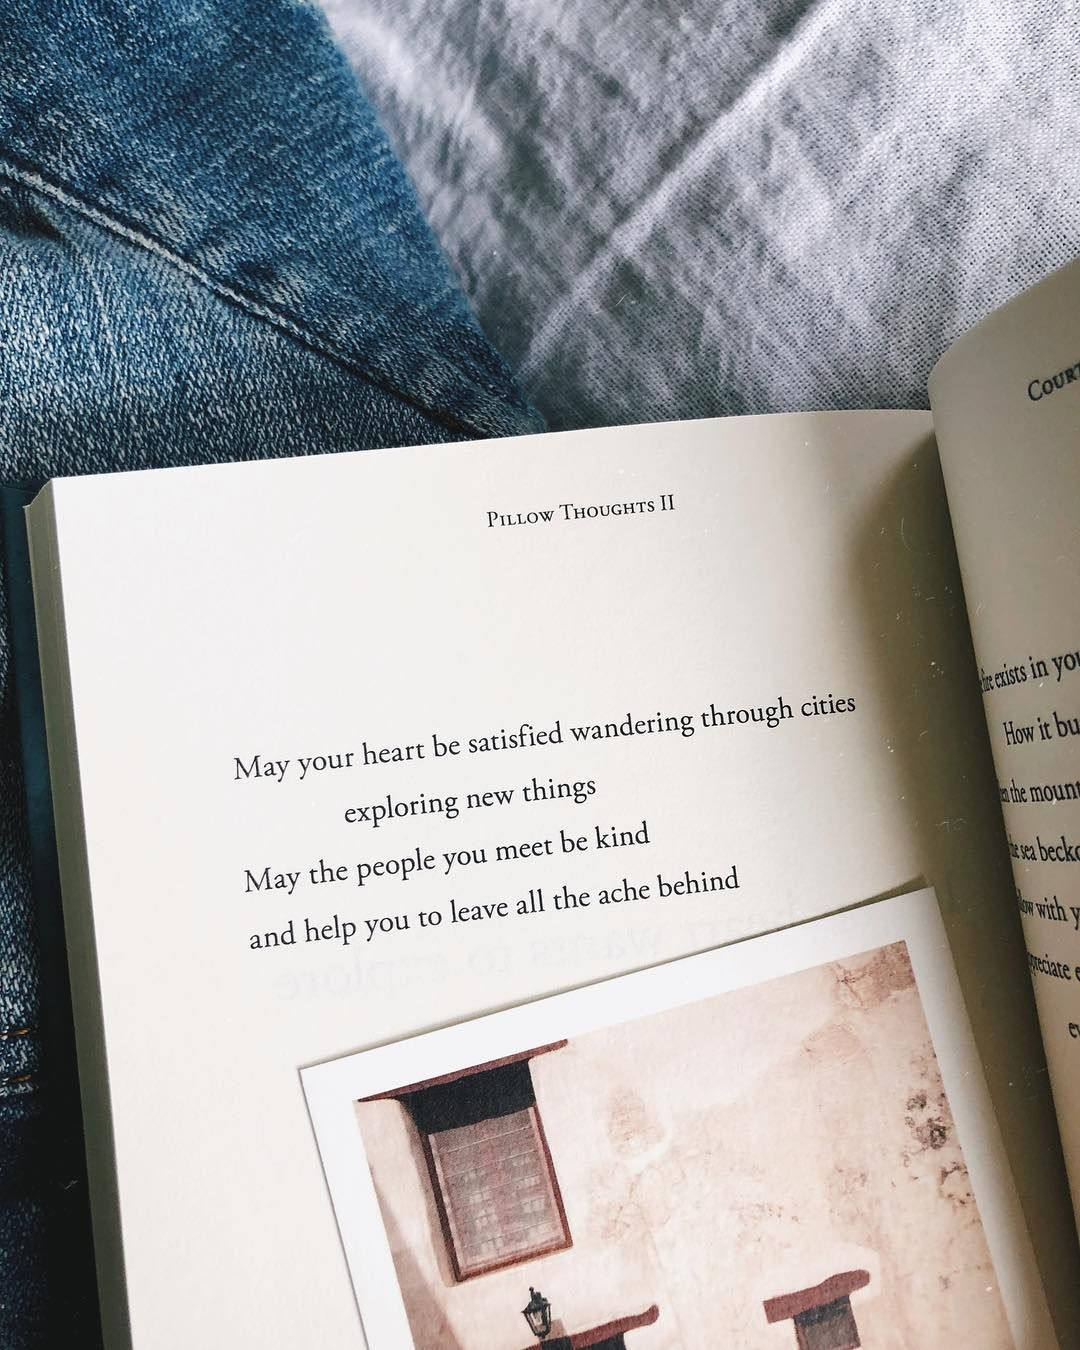 Pillow Thoughts ll, Healing the Heart . Available online via Amazon and Book Depository and